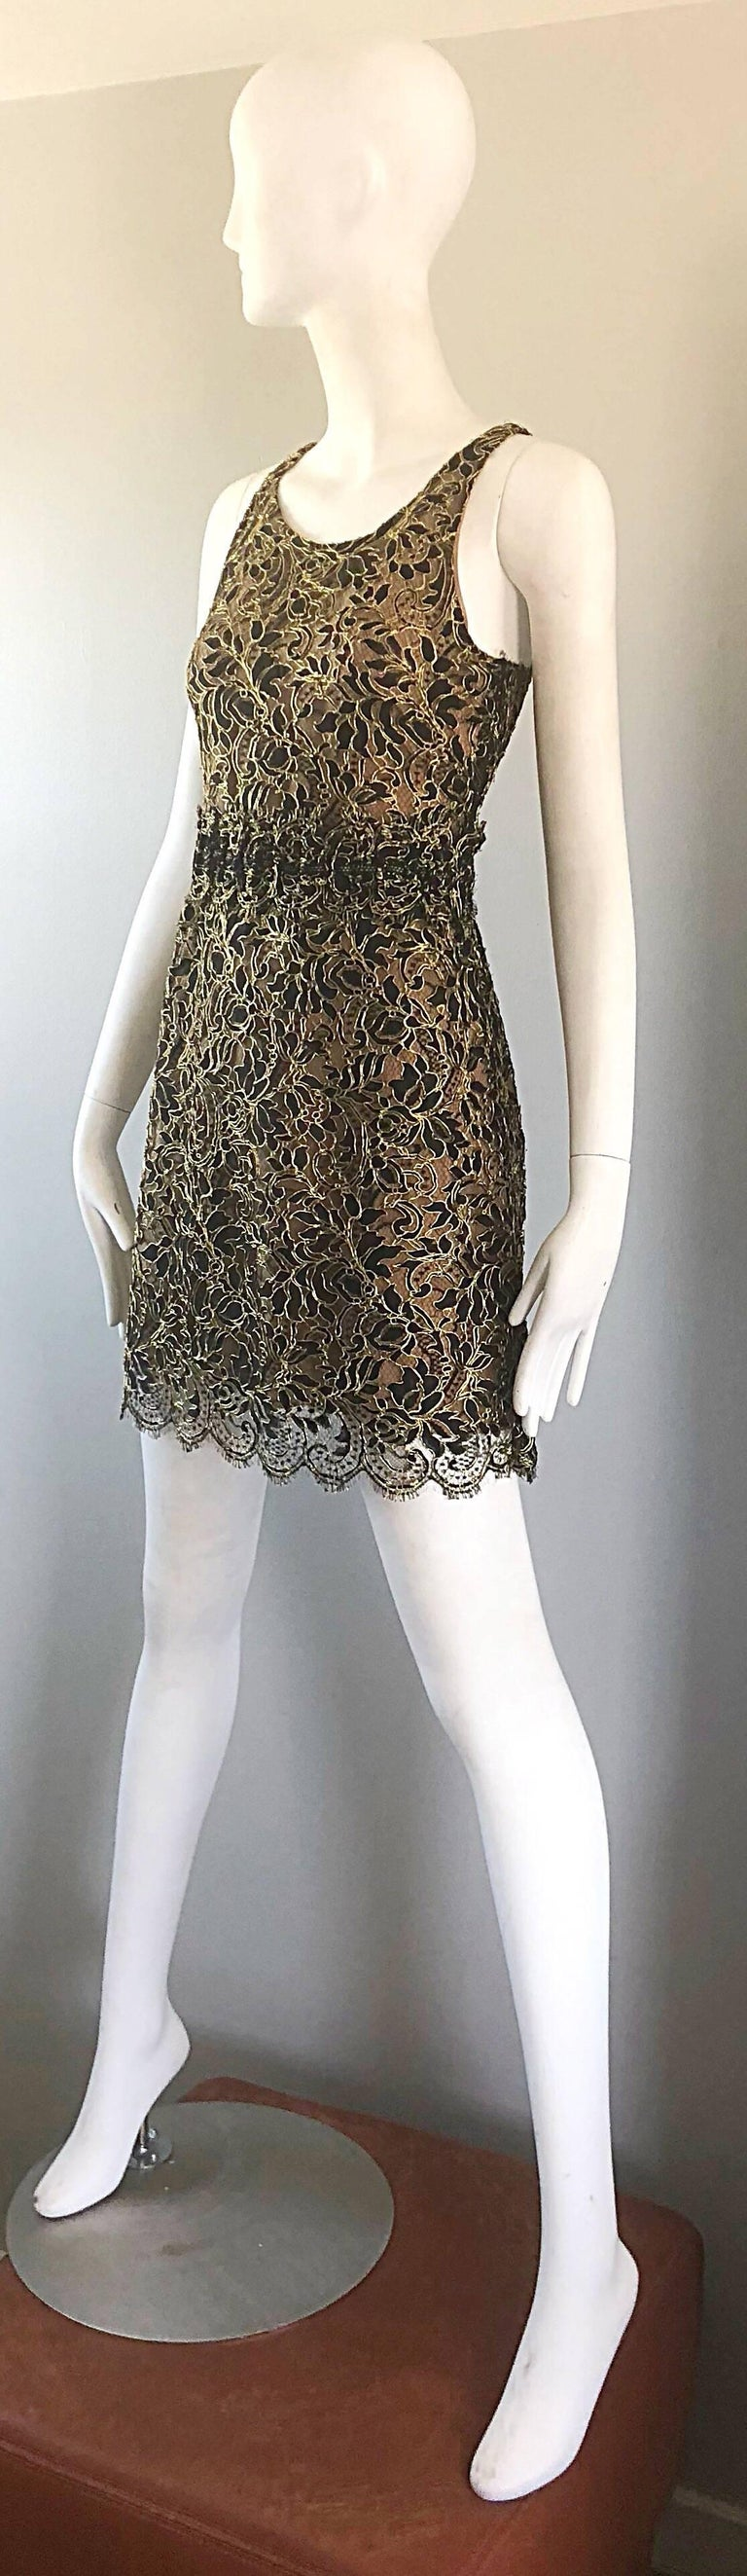 Women's Balenciaga by Nicolas Ghesquiere Black + Gold + Nude Silk Chiffon Lace Dress For Sale